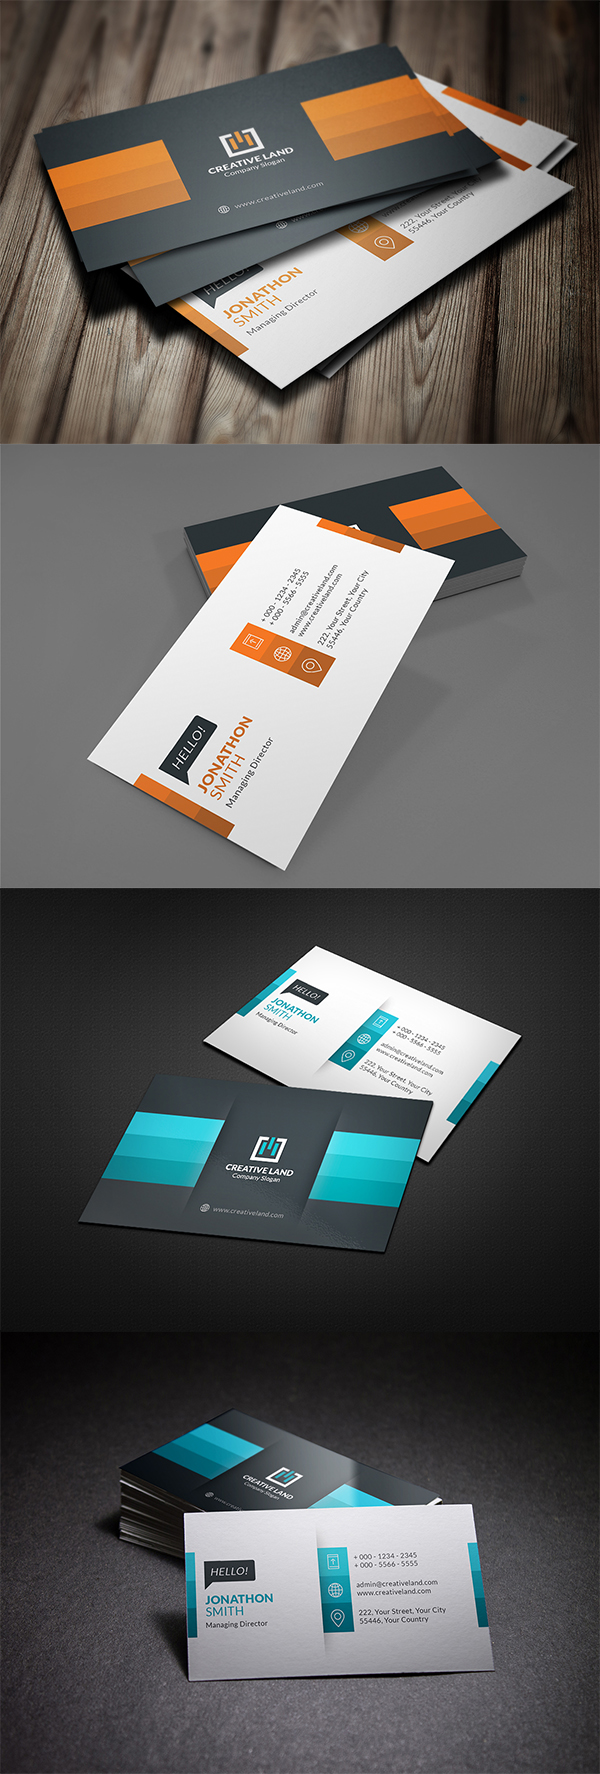 10 Business Card Design